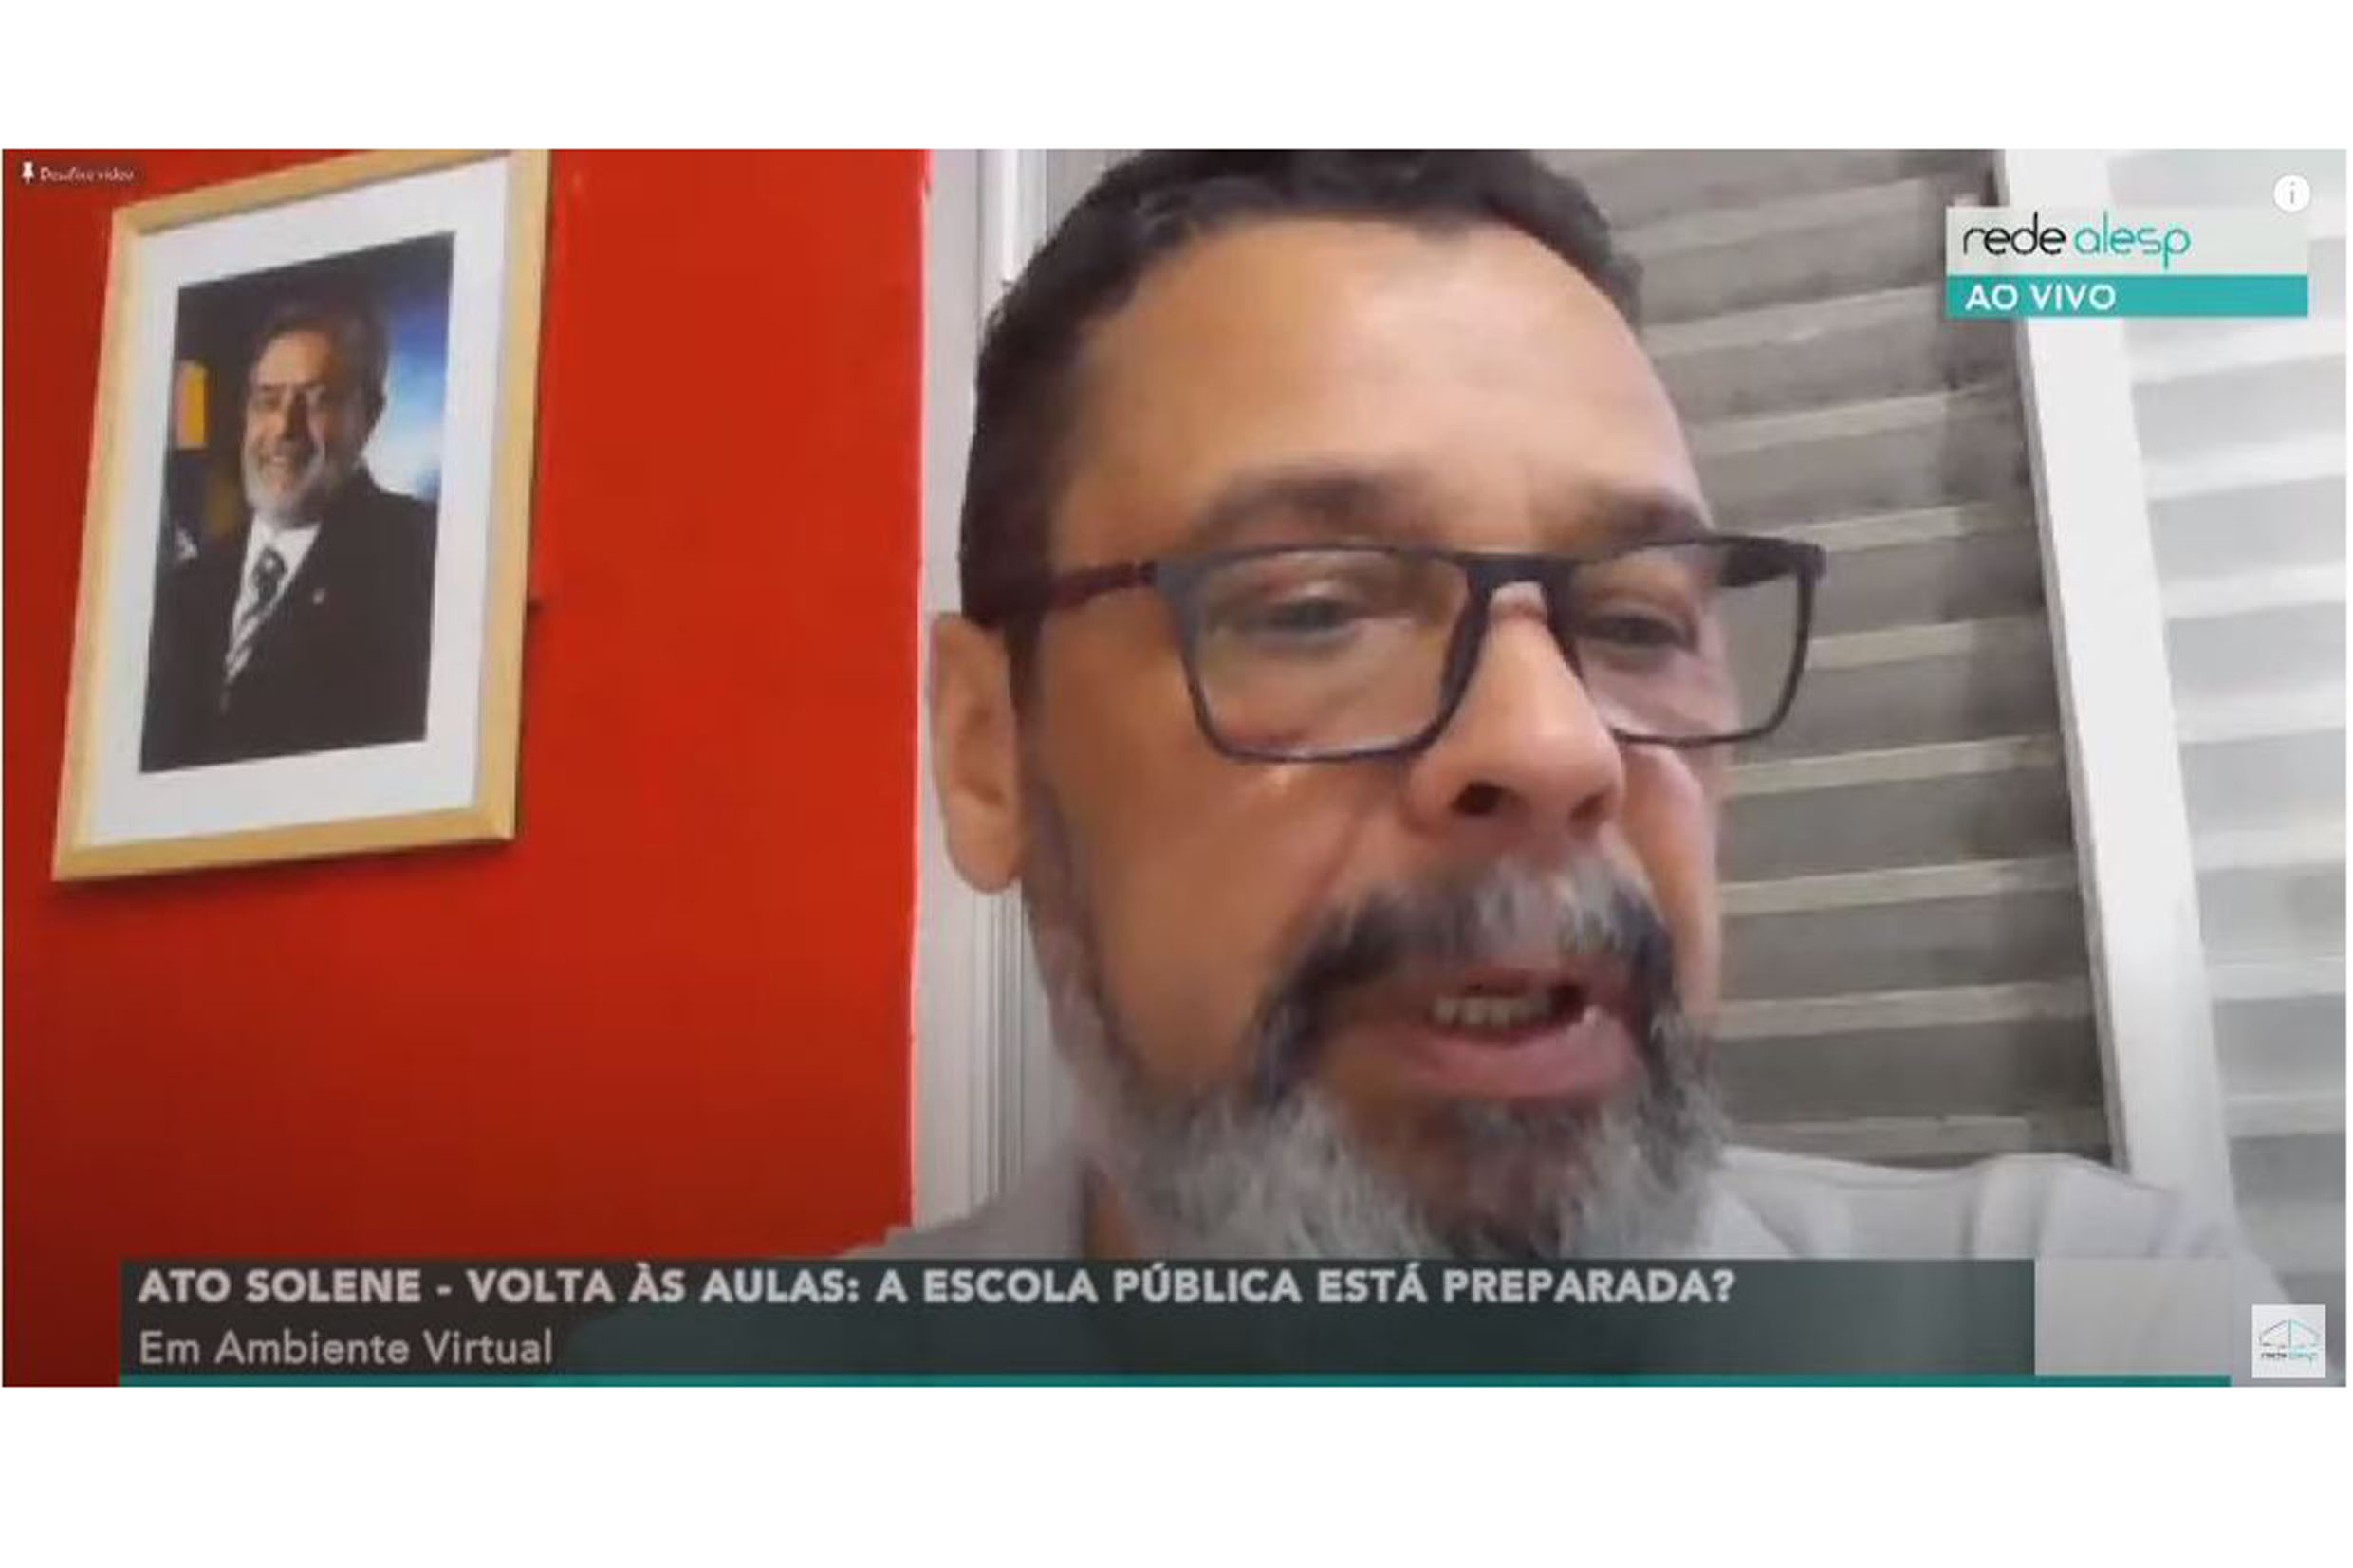 Teonilio Barba<a style='float:right' href='https://www3.al.sp.gov.br/repositorio/noticia/N-07-2020/fg251927.jpg' target=_blank><img src='/_img/material-file-download-white.png' width='14px' alt='Clique para baixar a imagem'></a>